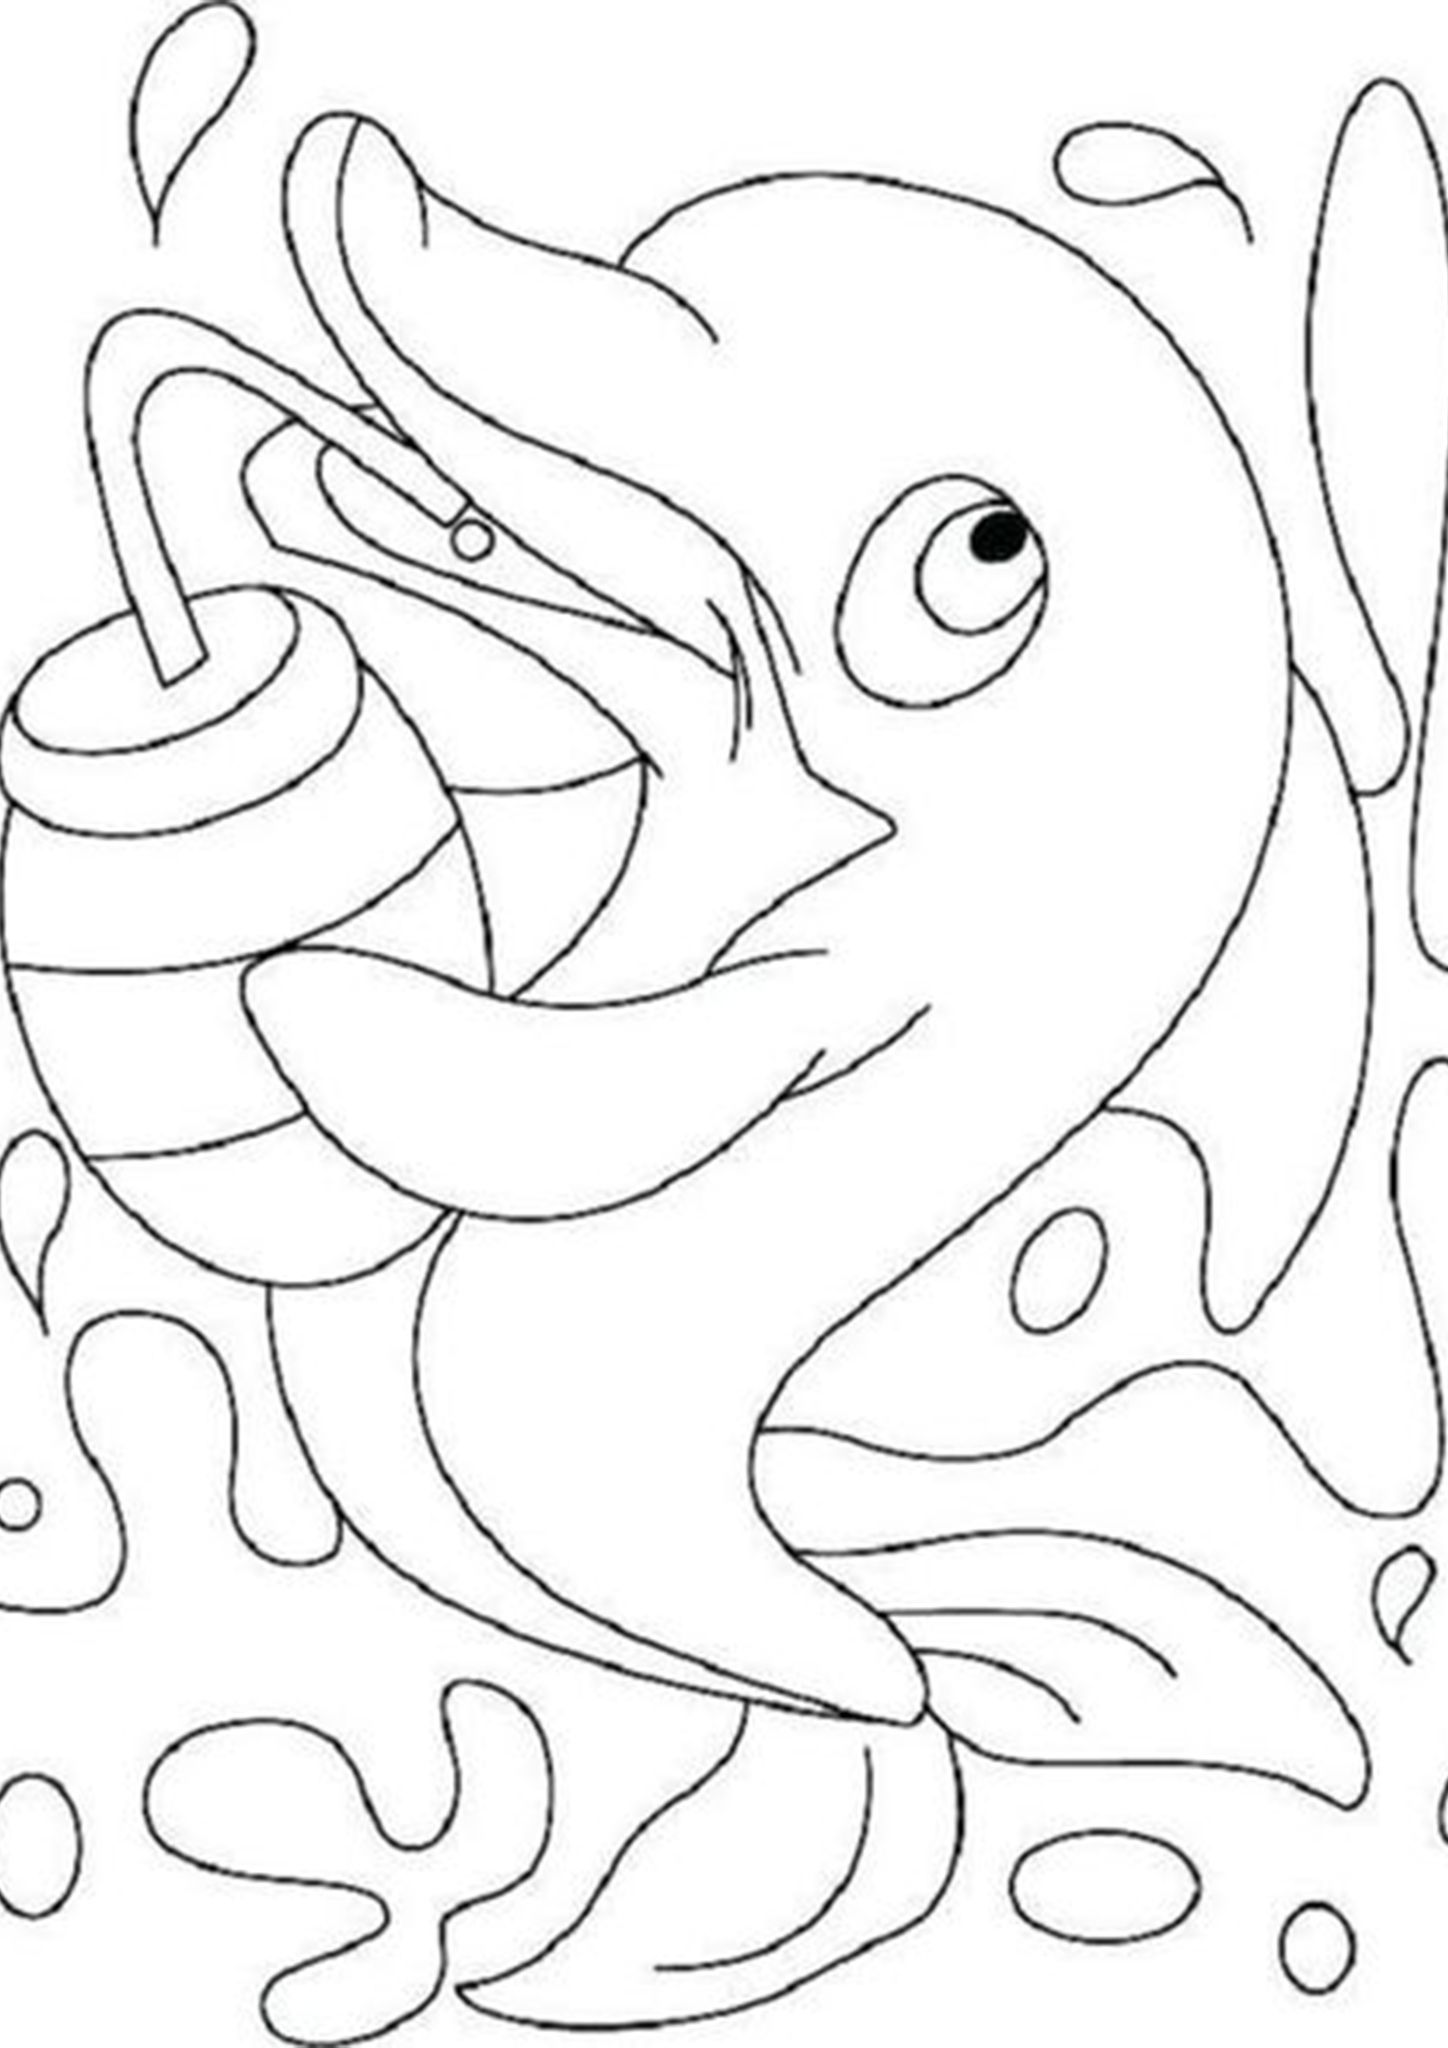 dolphin cartoon coloring pages dolphin coloring page 170 coloring sheets pages cartoon dolphin coloring